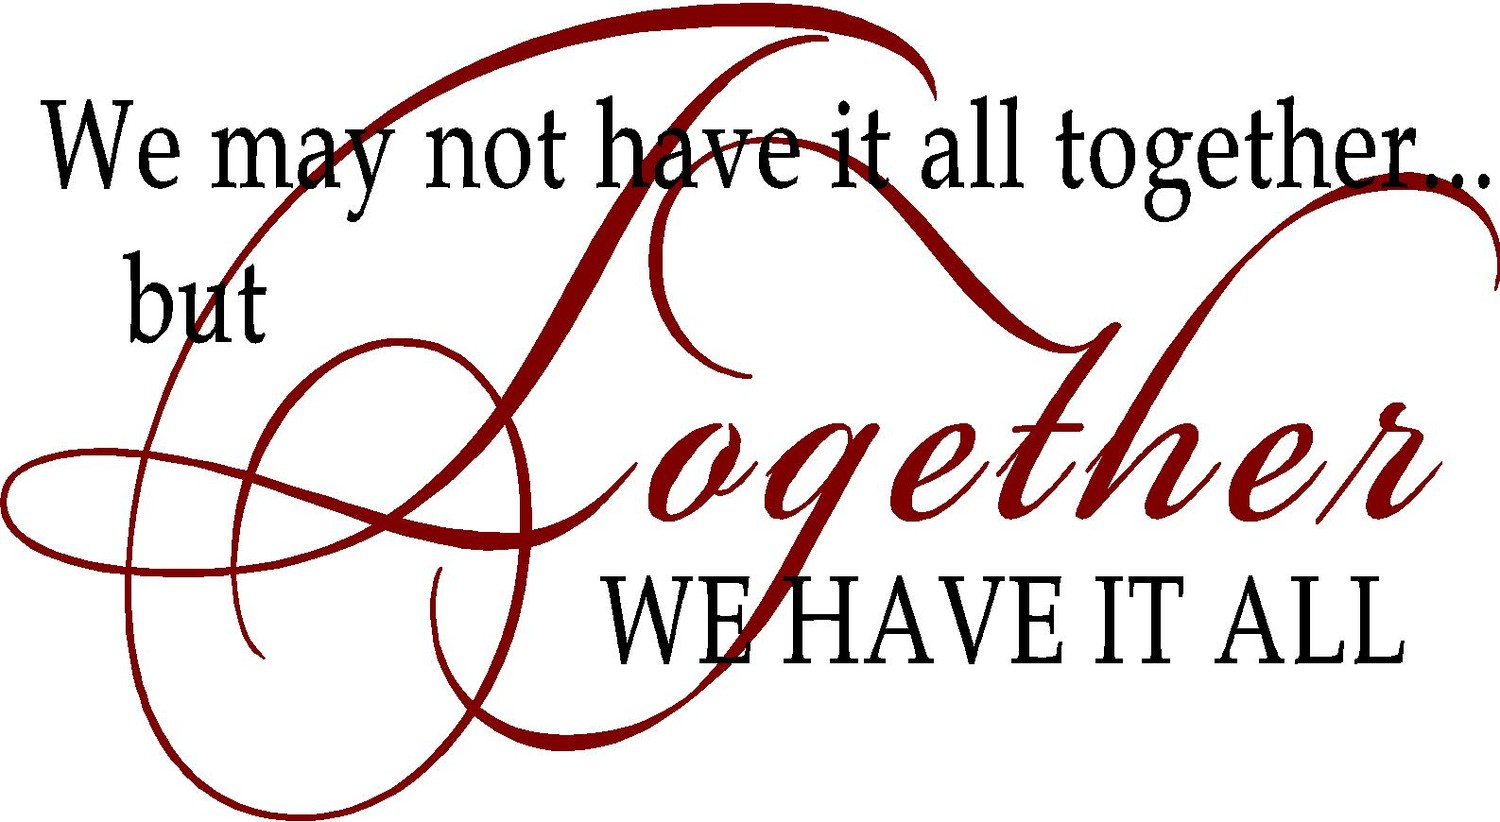 Togetherness Quotes And Sayings: Famous Quotes About 'Get Together'